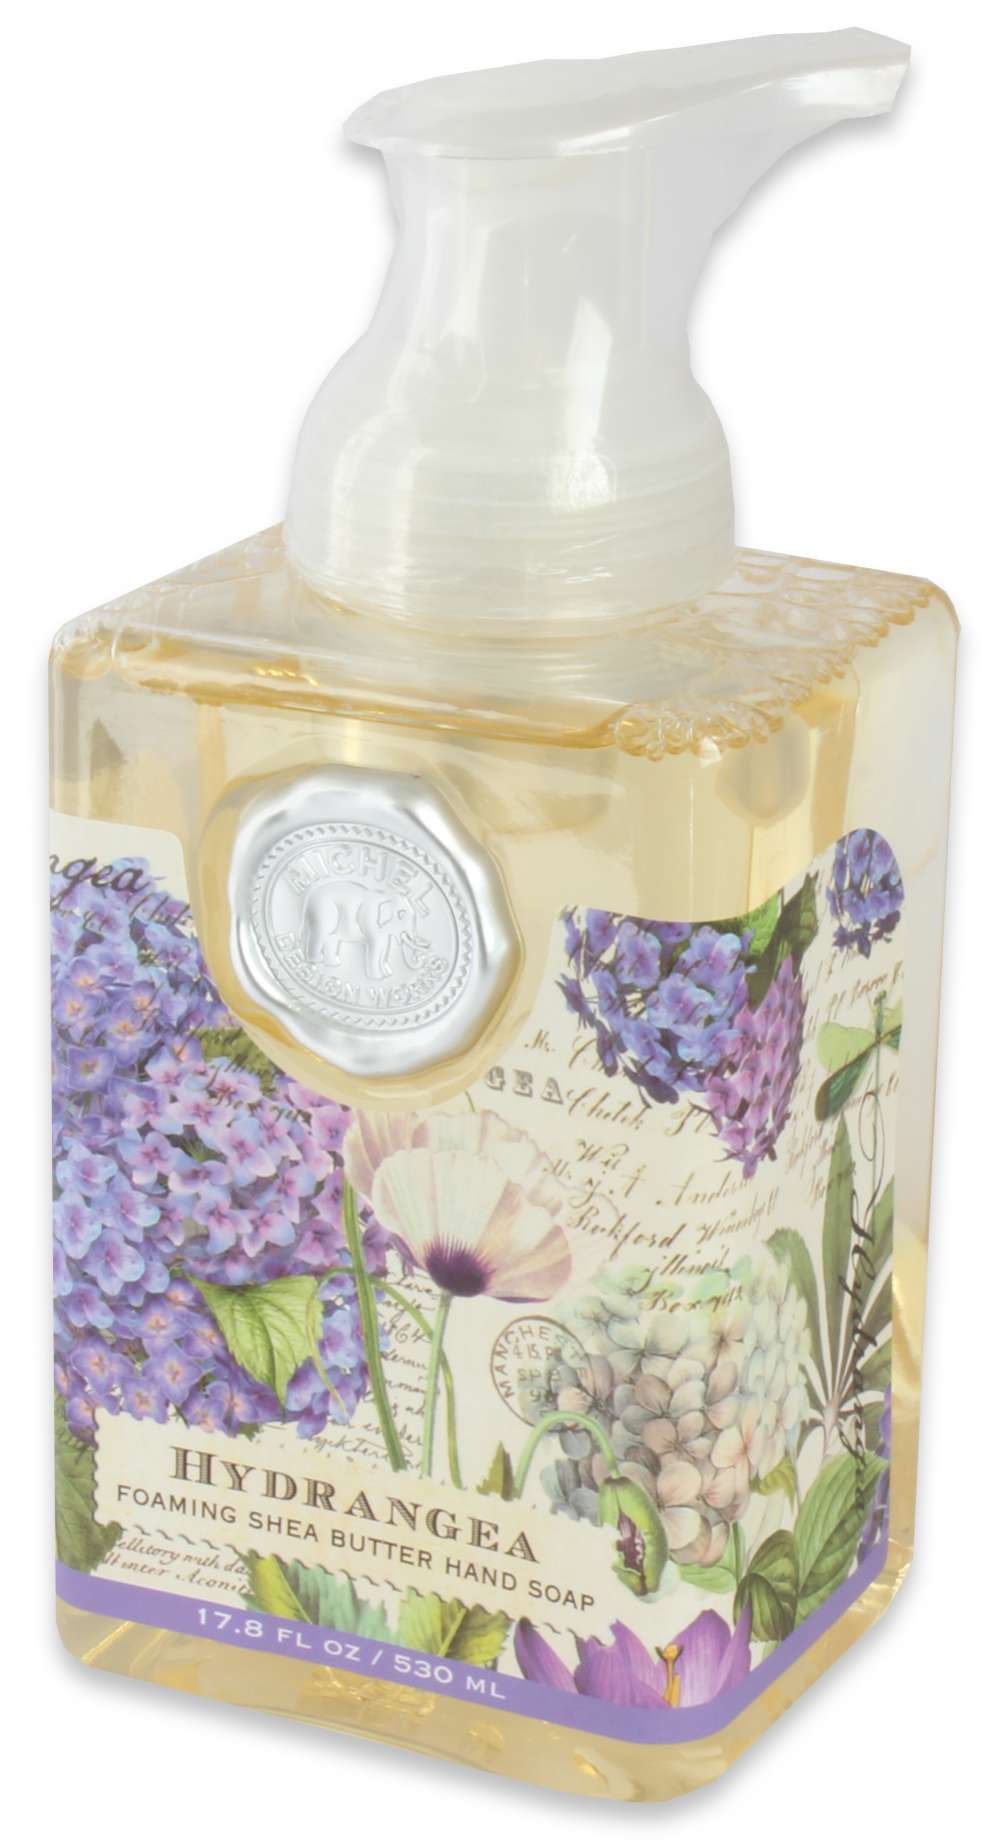 Michel Design Works - Hydrangea Foaming Hand Soap